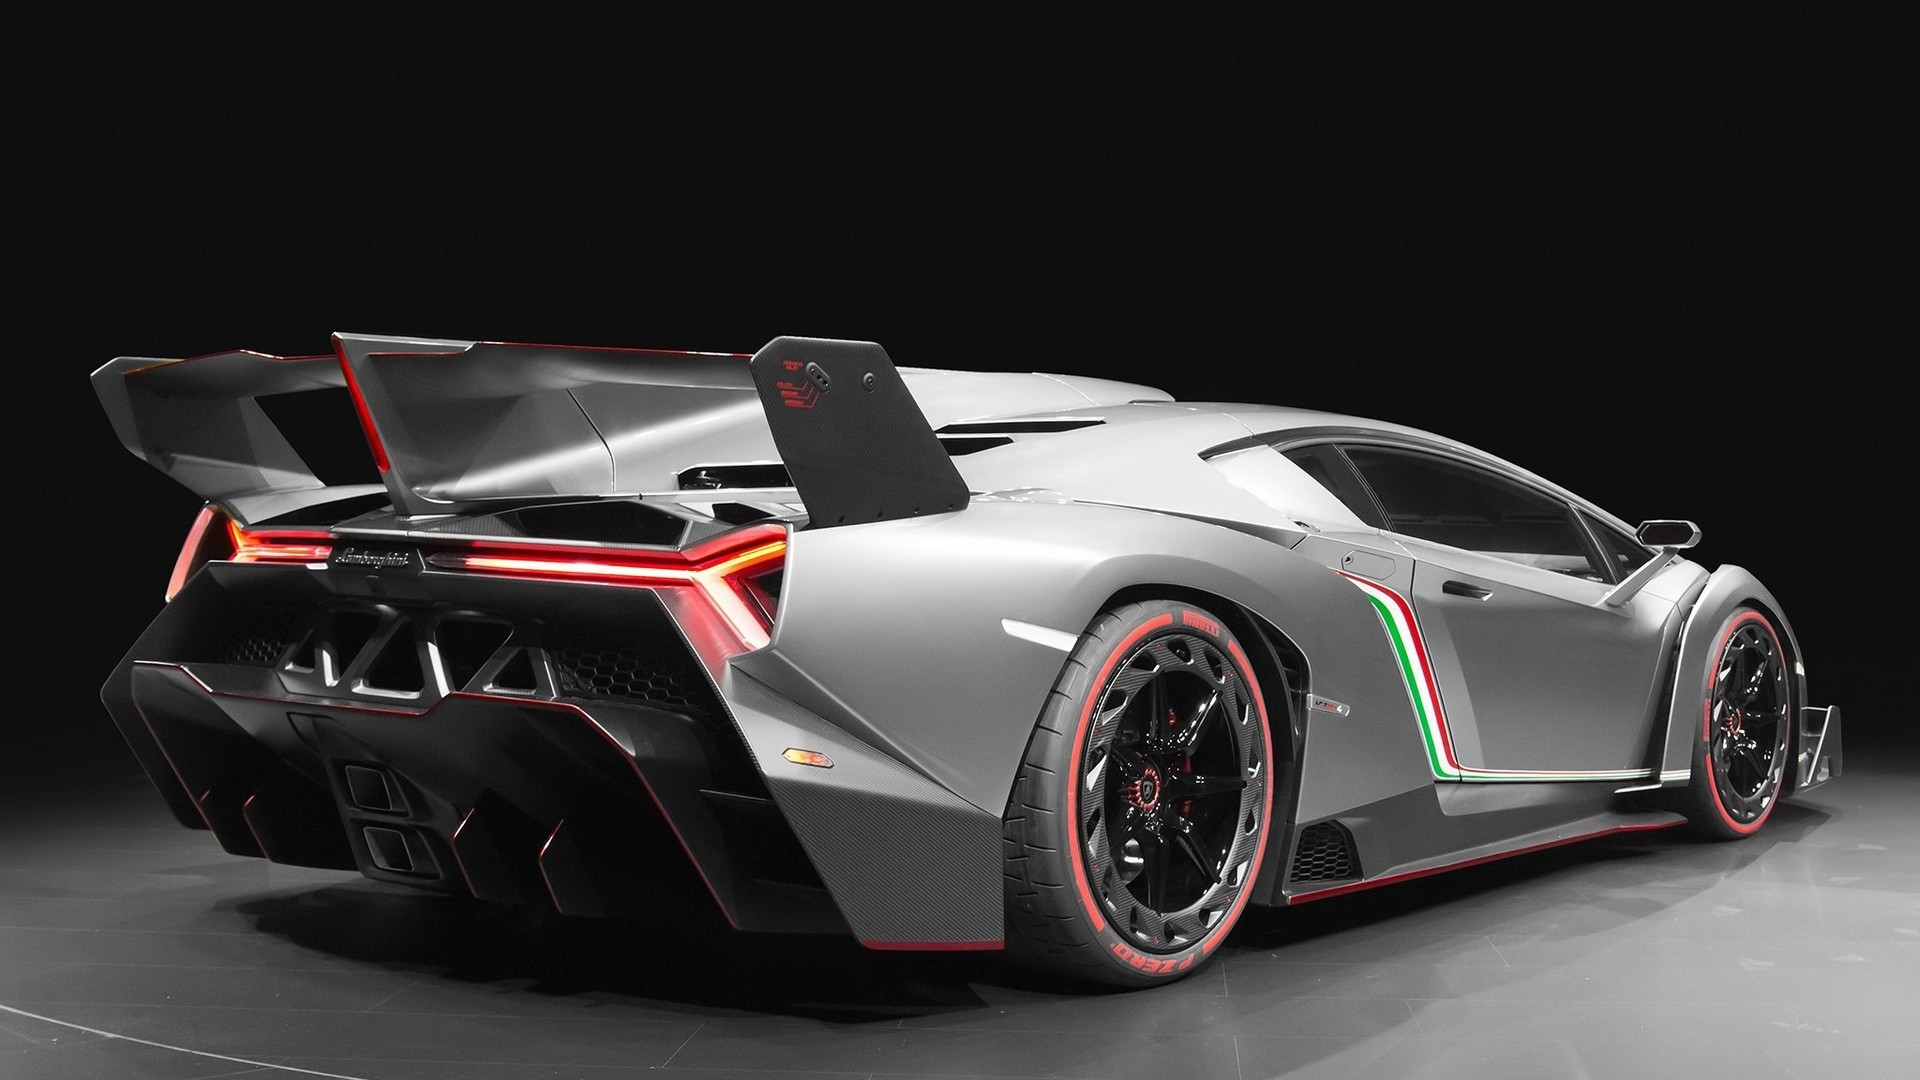 1920x1080 Lamborghini Veneno Roadster Crystal City Car 2014 Red